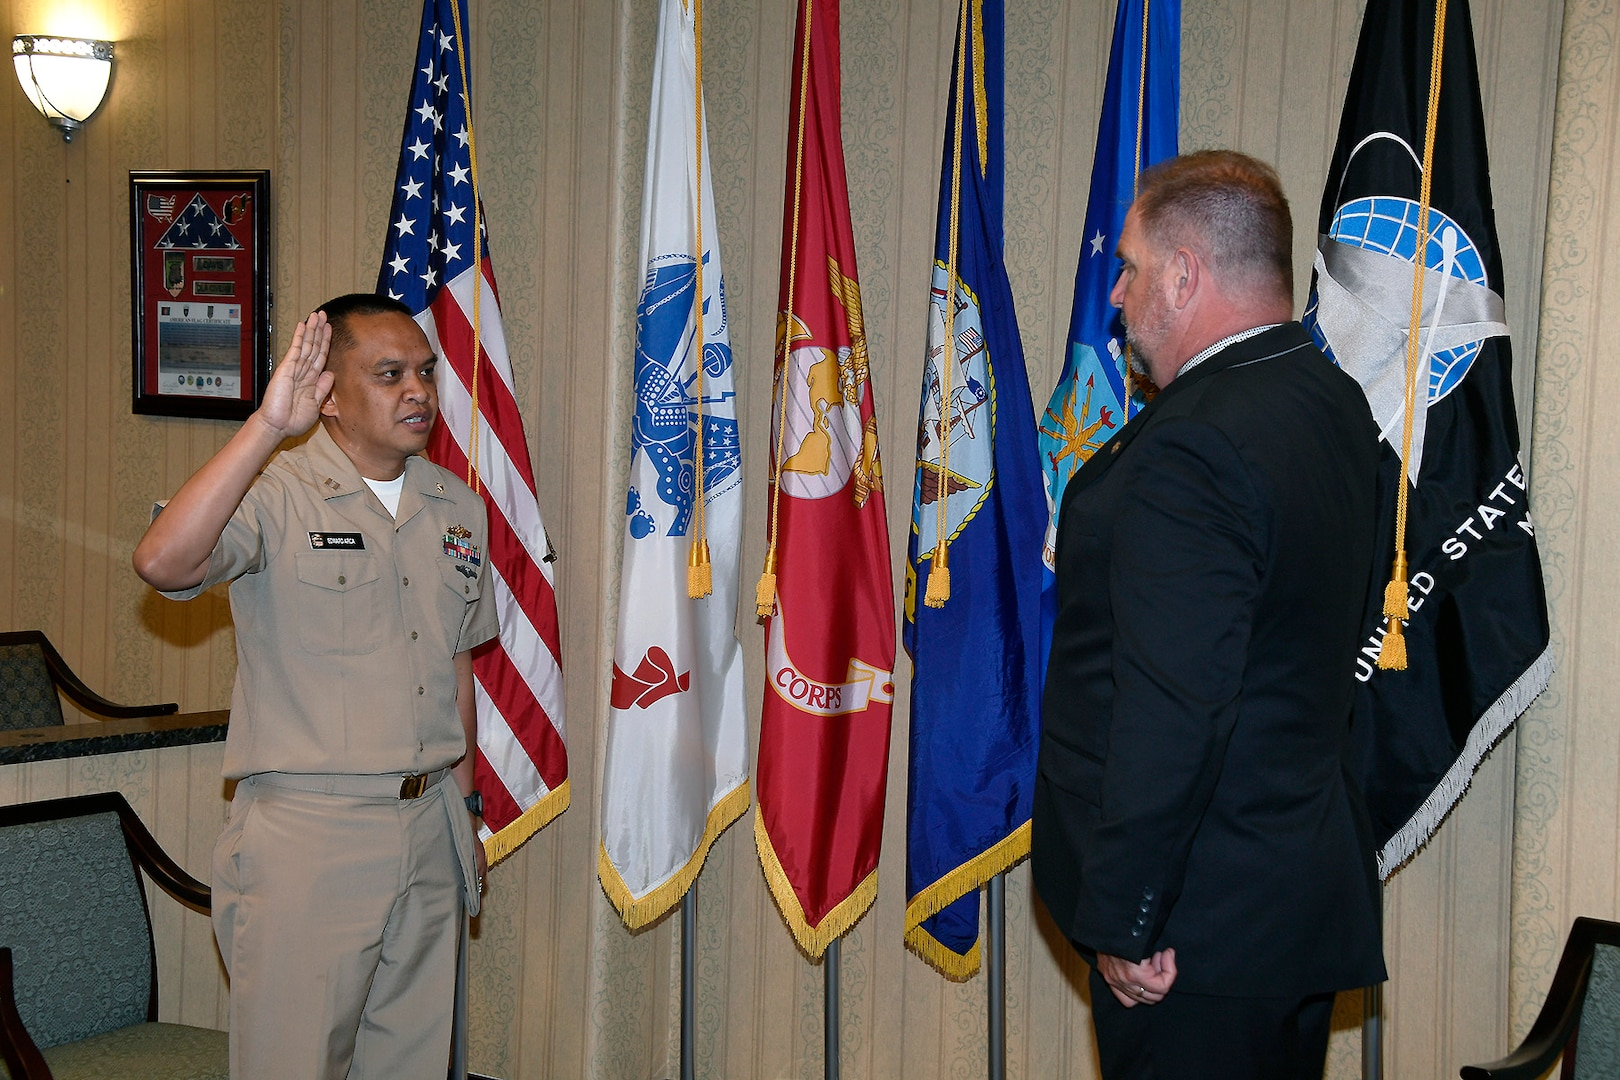 Navy Lt. being promoted.